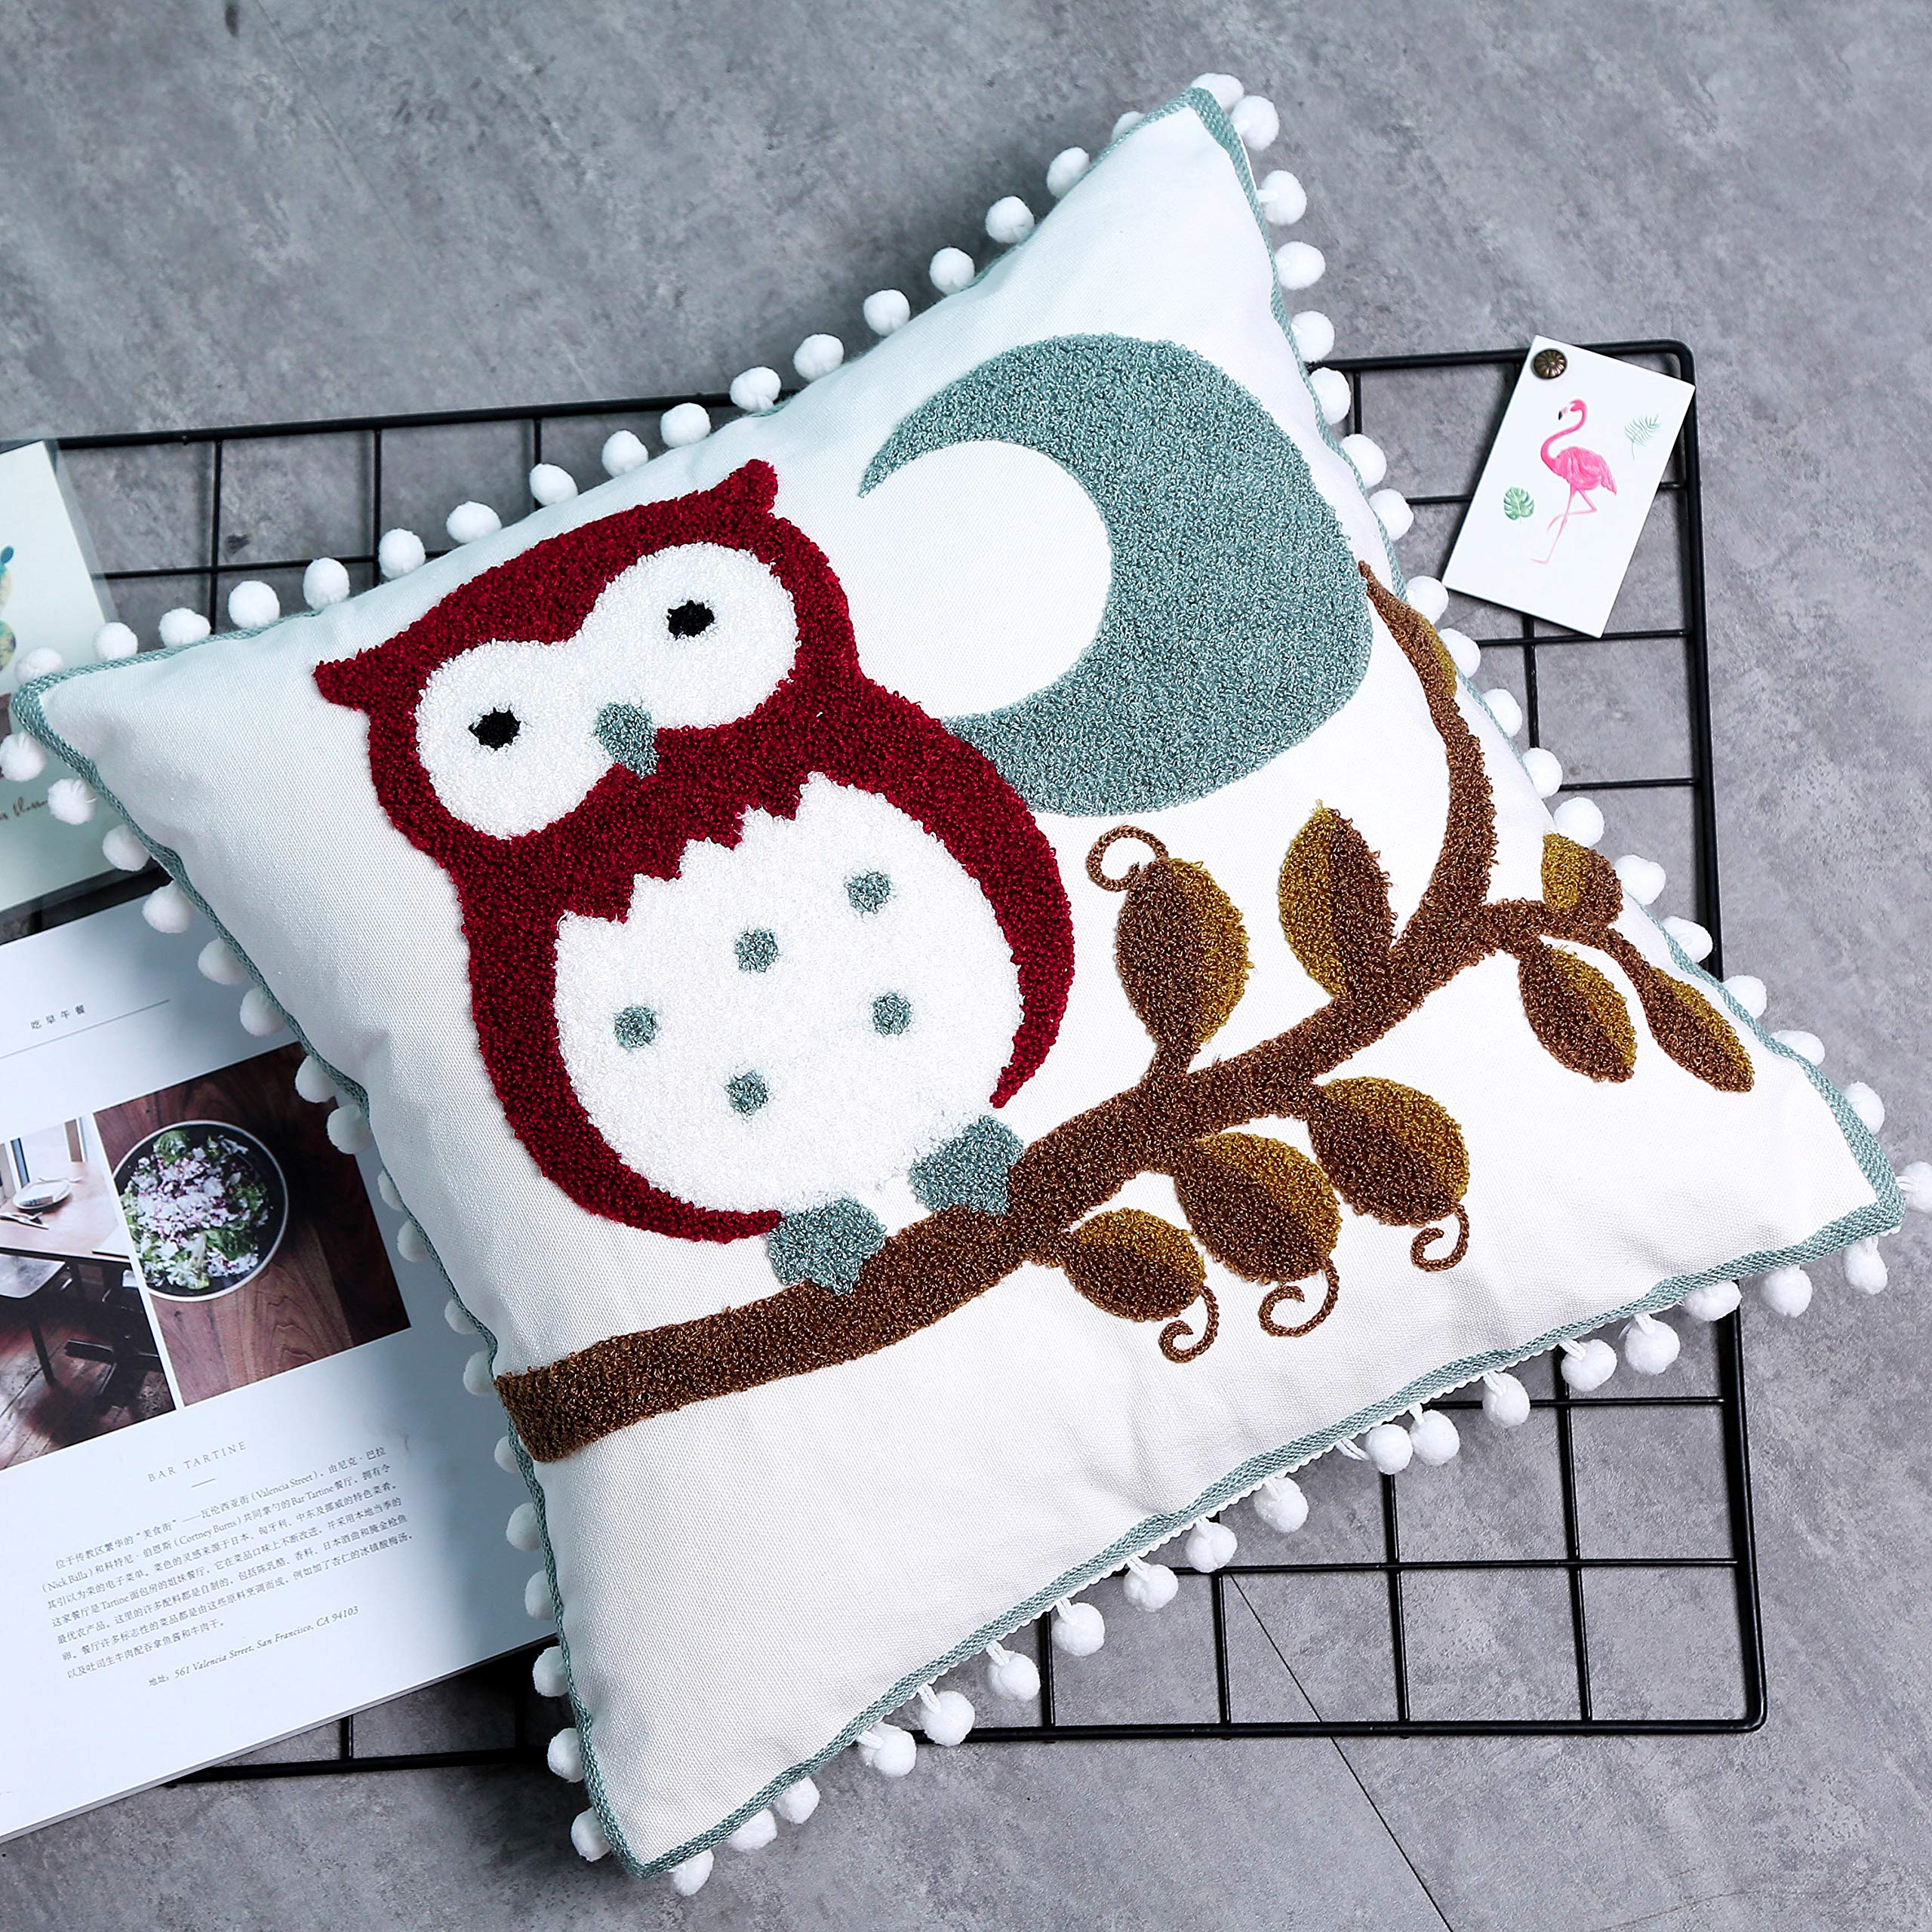 """TEALP Cute Decorative Throw Pillow Case Cotton Plain Color Cushion Cover with Pompom Trims Home Decor for Couch Sofa 18"""" x 18"""" Ball Fringe Set of 1,Night Owl"""